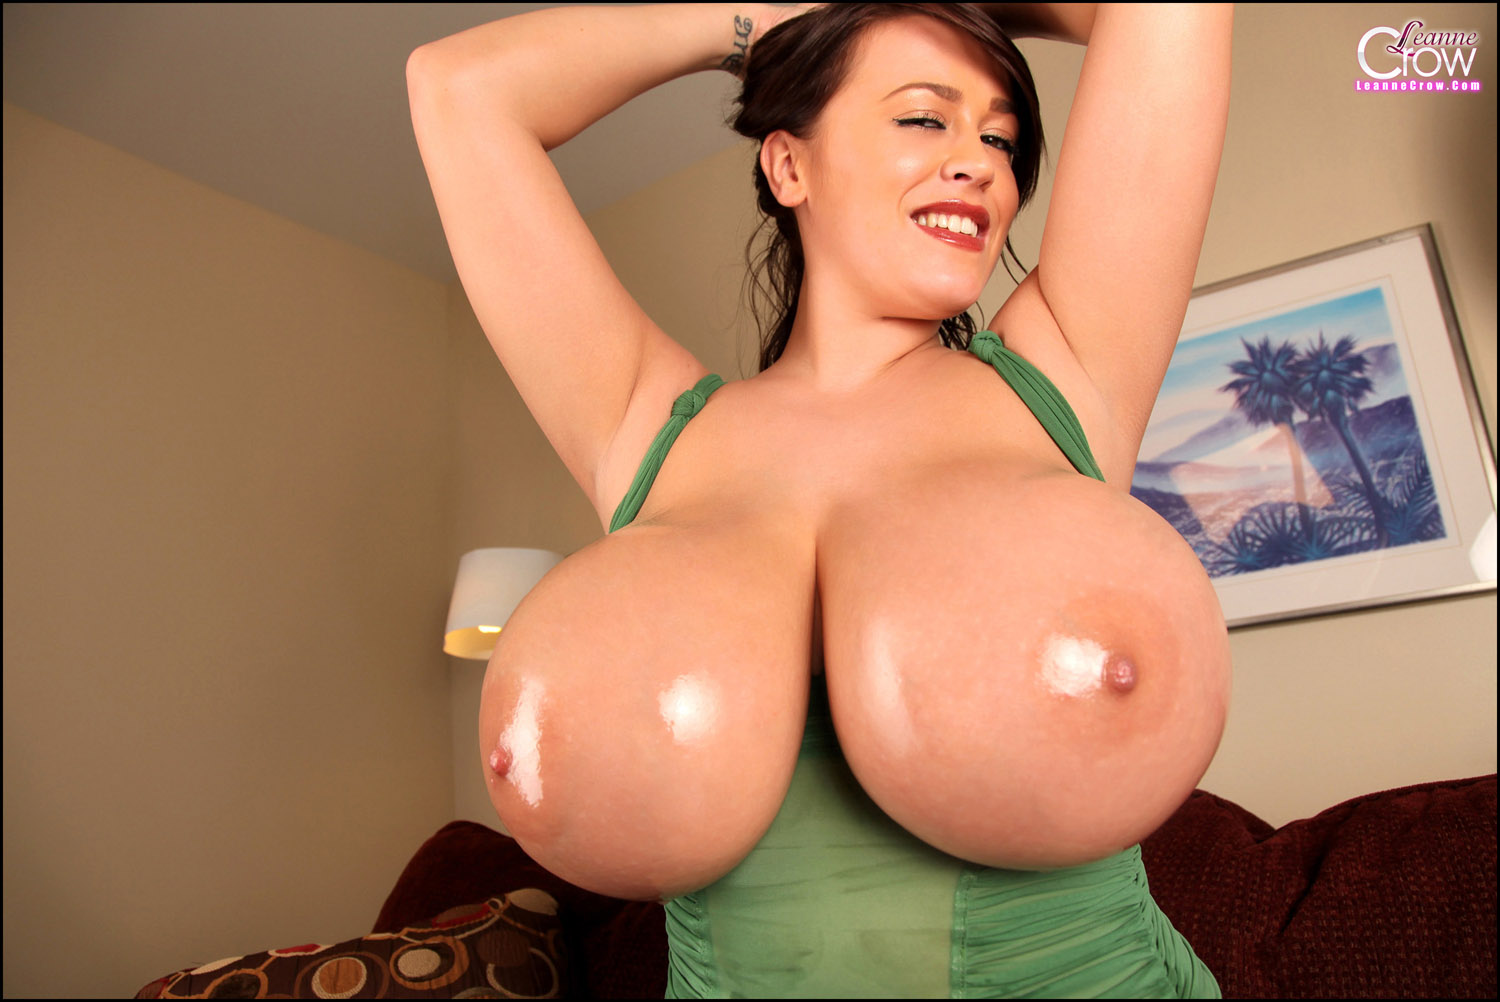 Huge tits from venezuela - 3 10